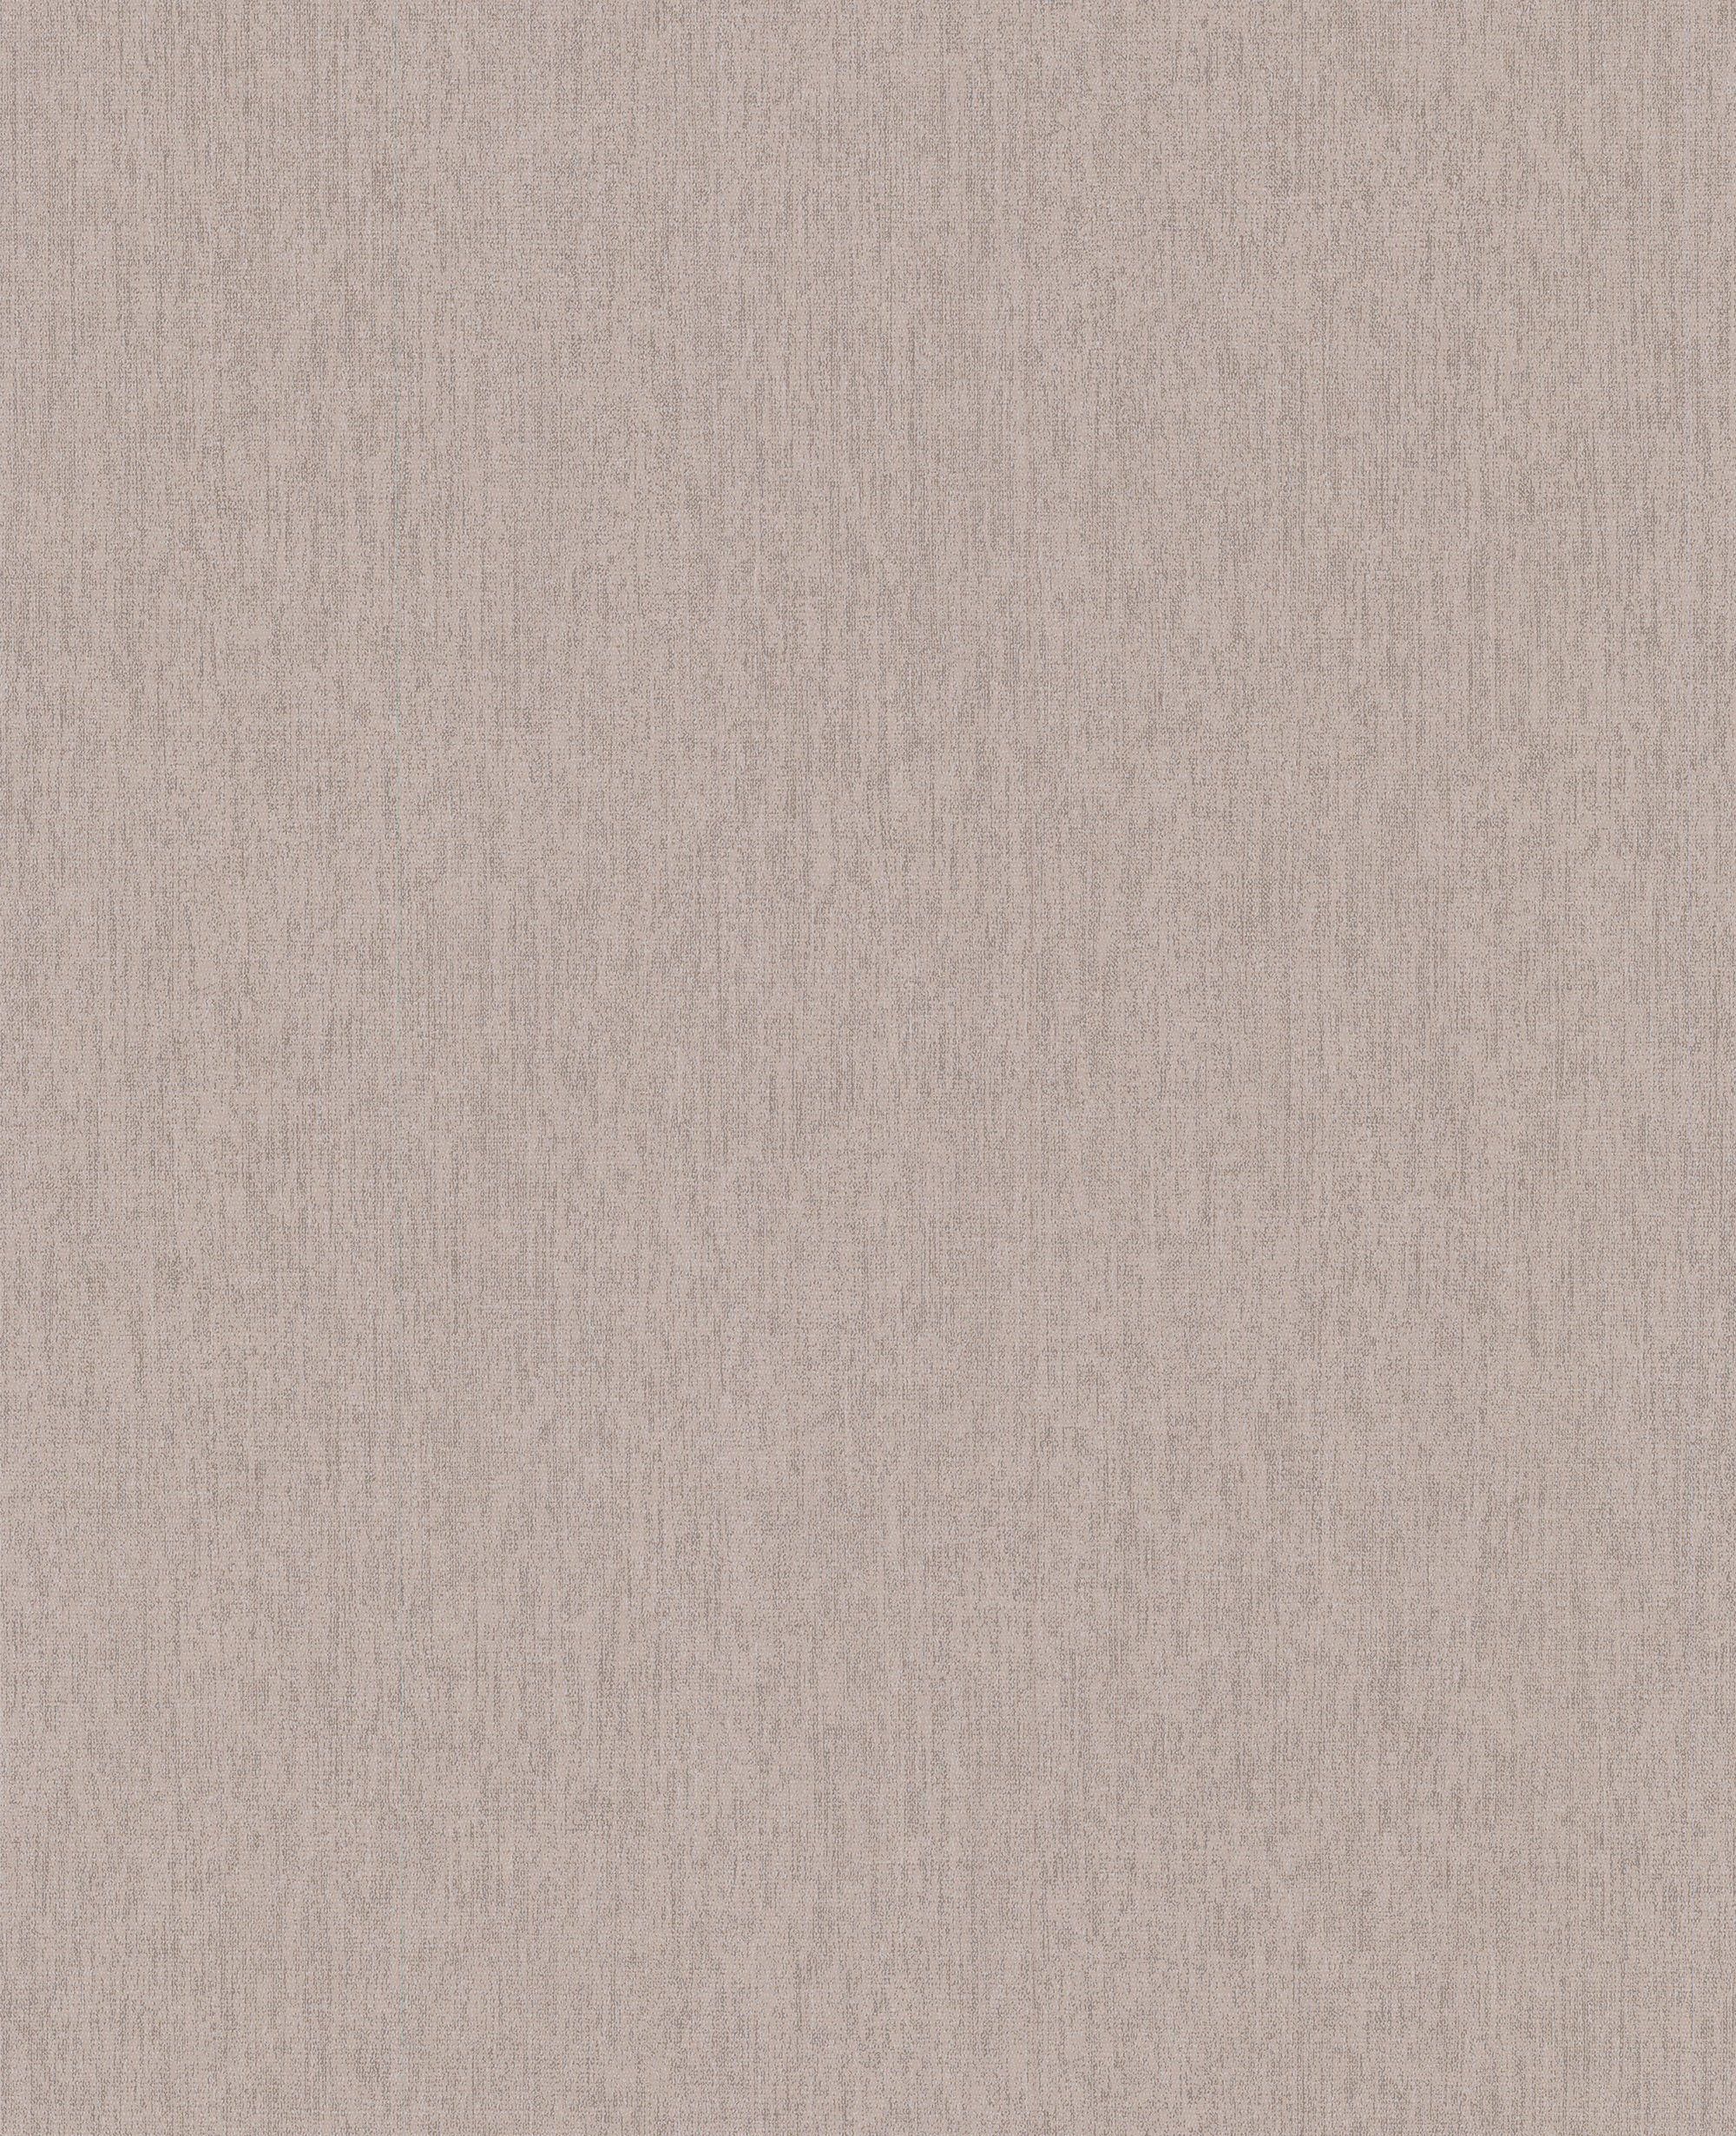 superfresco calico wallpaper sample  natural.